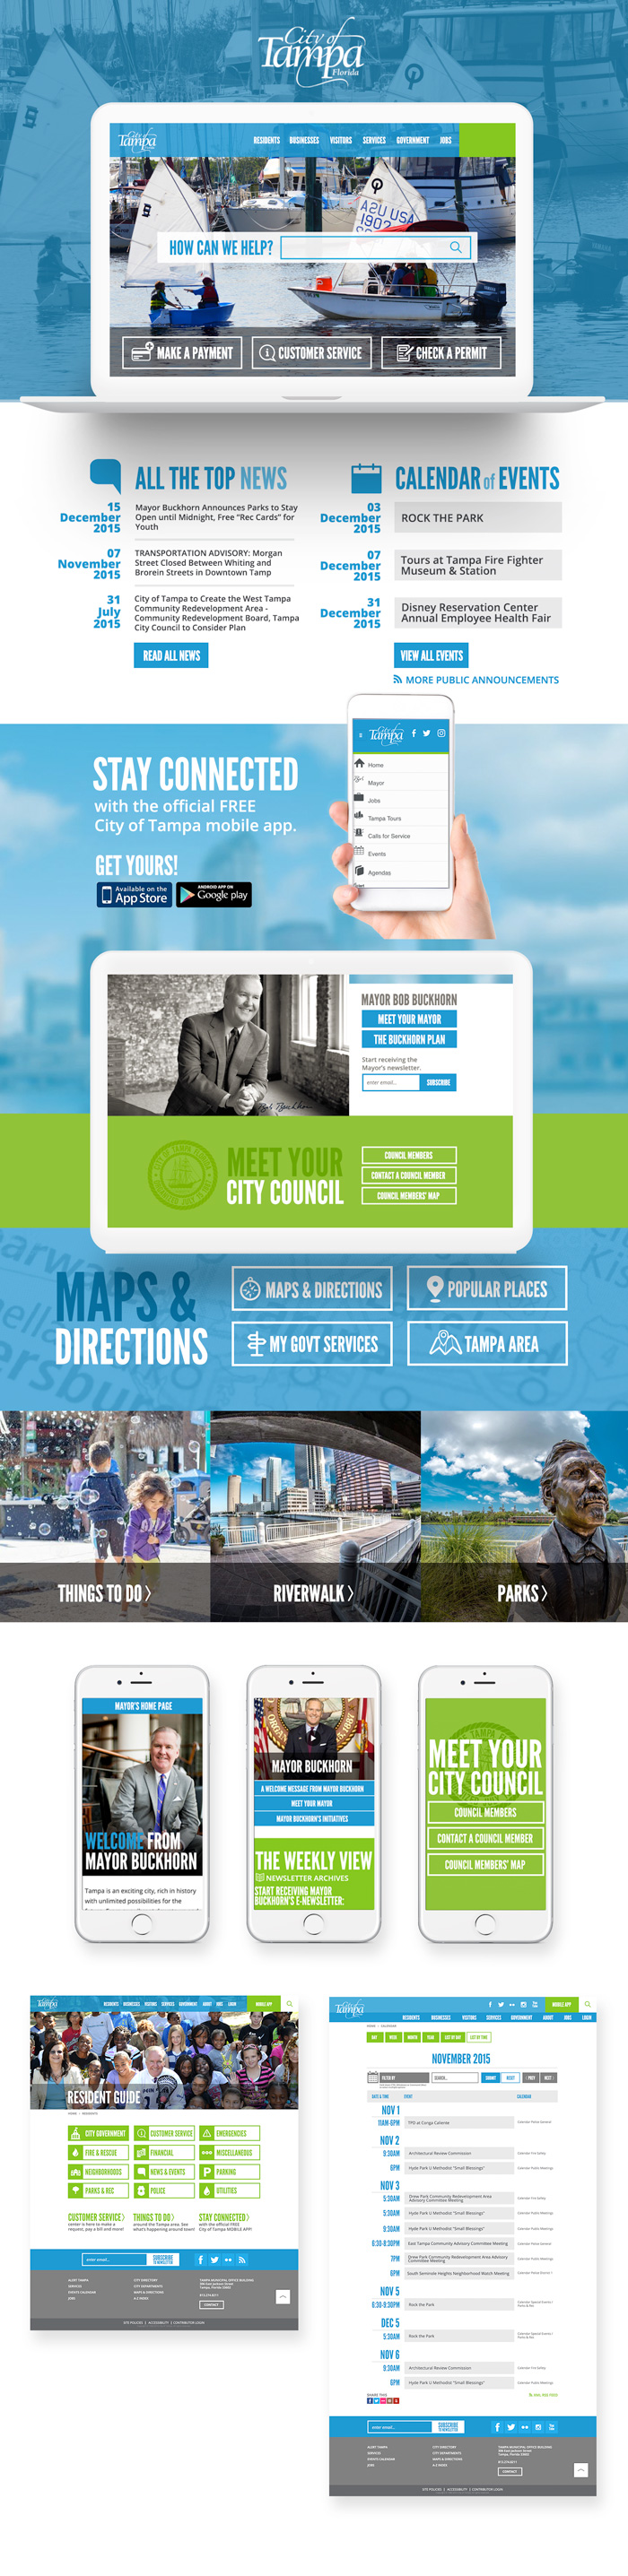 City of Tampa website homepage